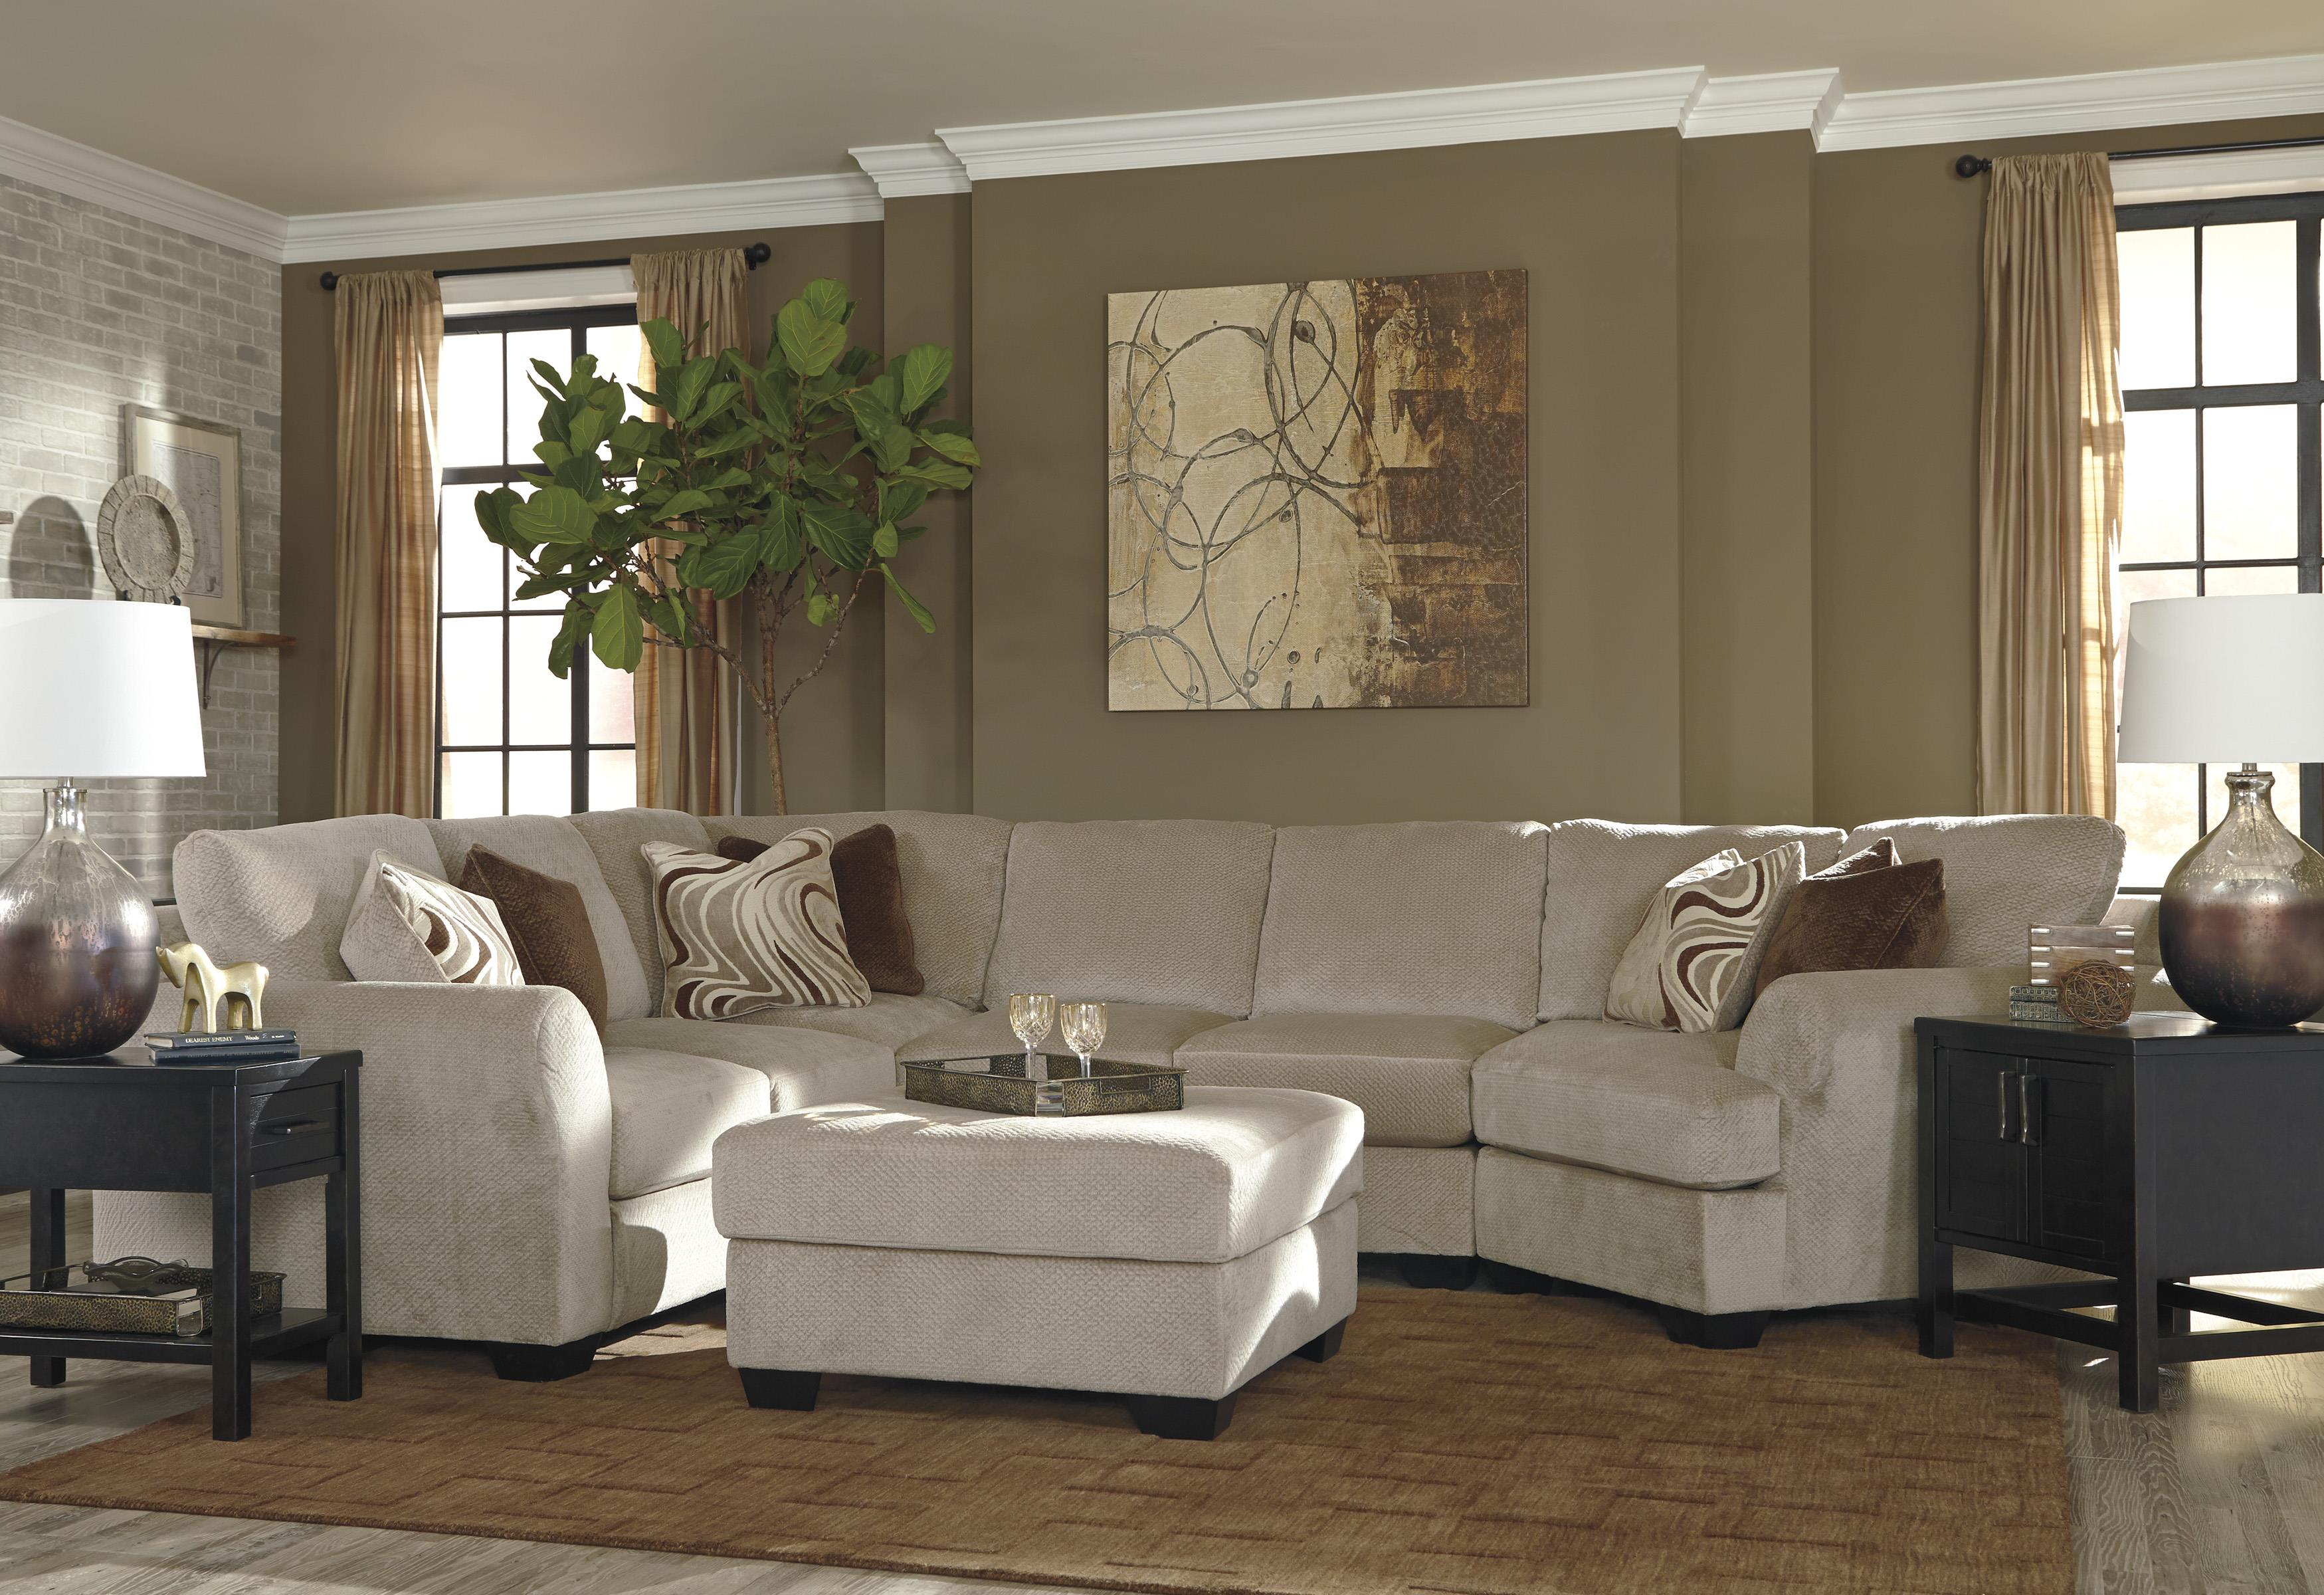 Ashley/Benchcraft Hazes Stationary Living Room Group - Item Number: 65701 Living Room Group 3